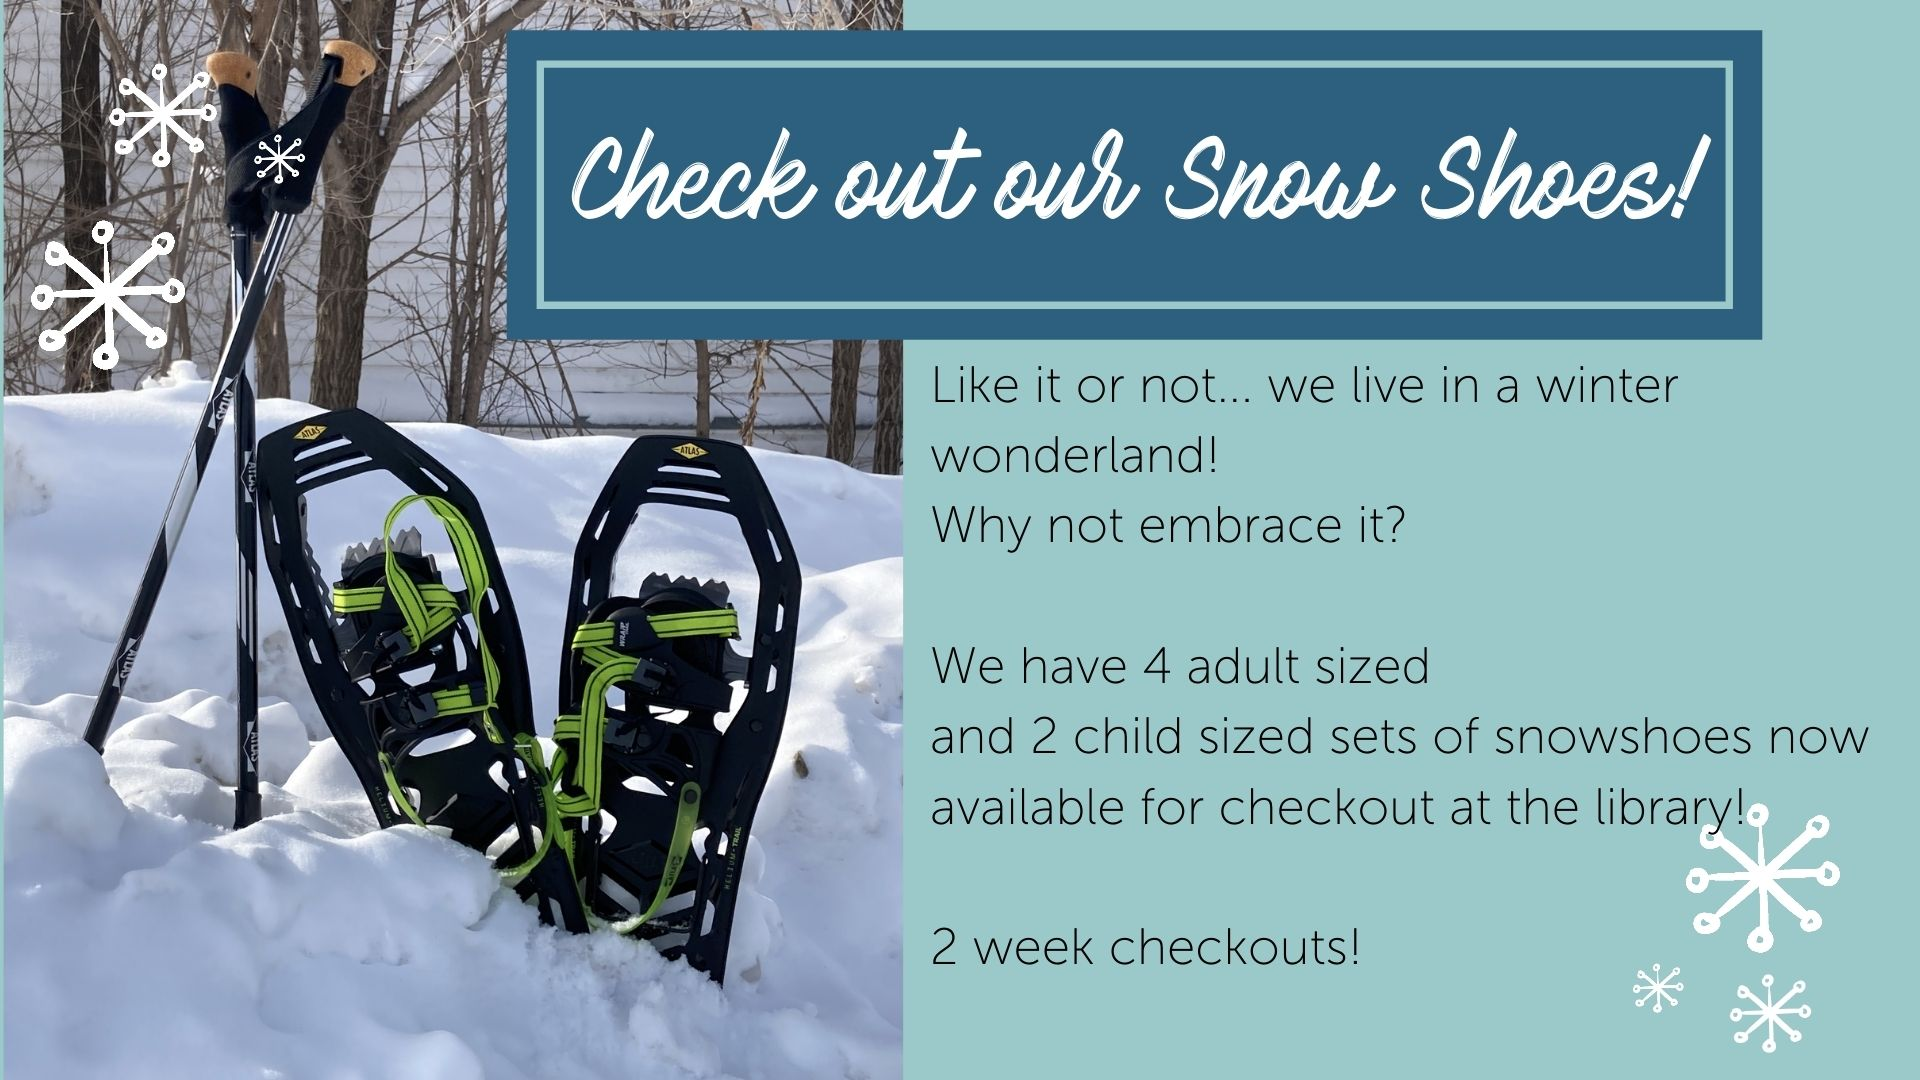 snow shoe check out ad